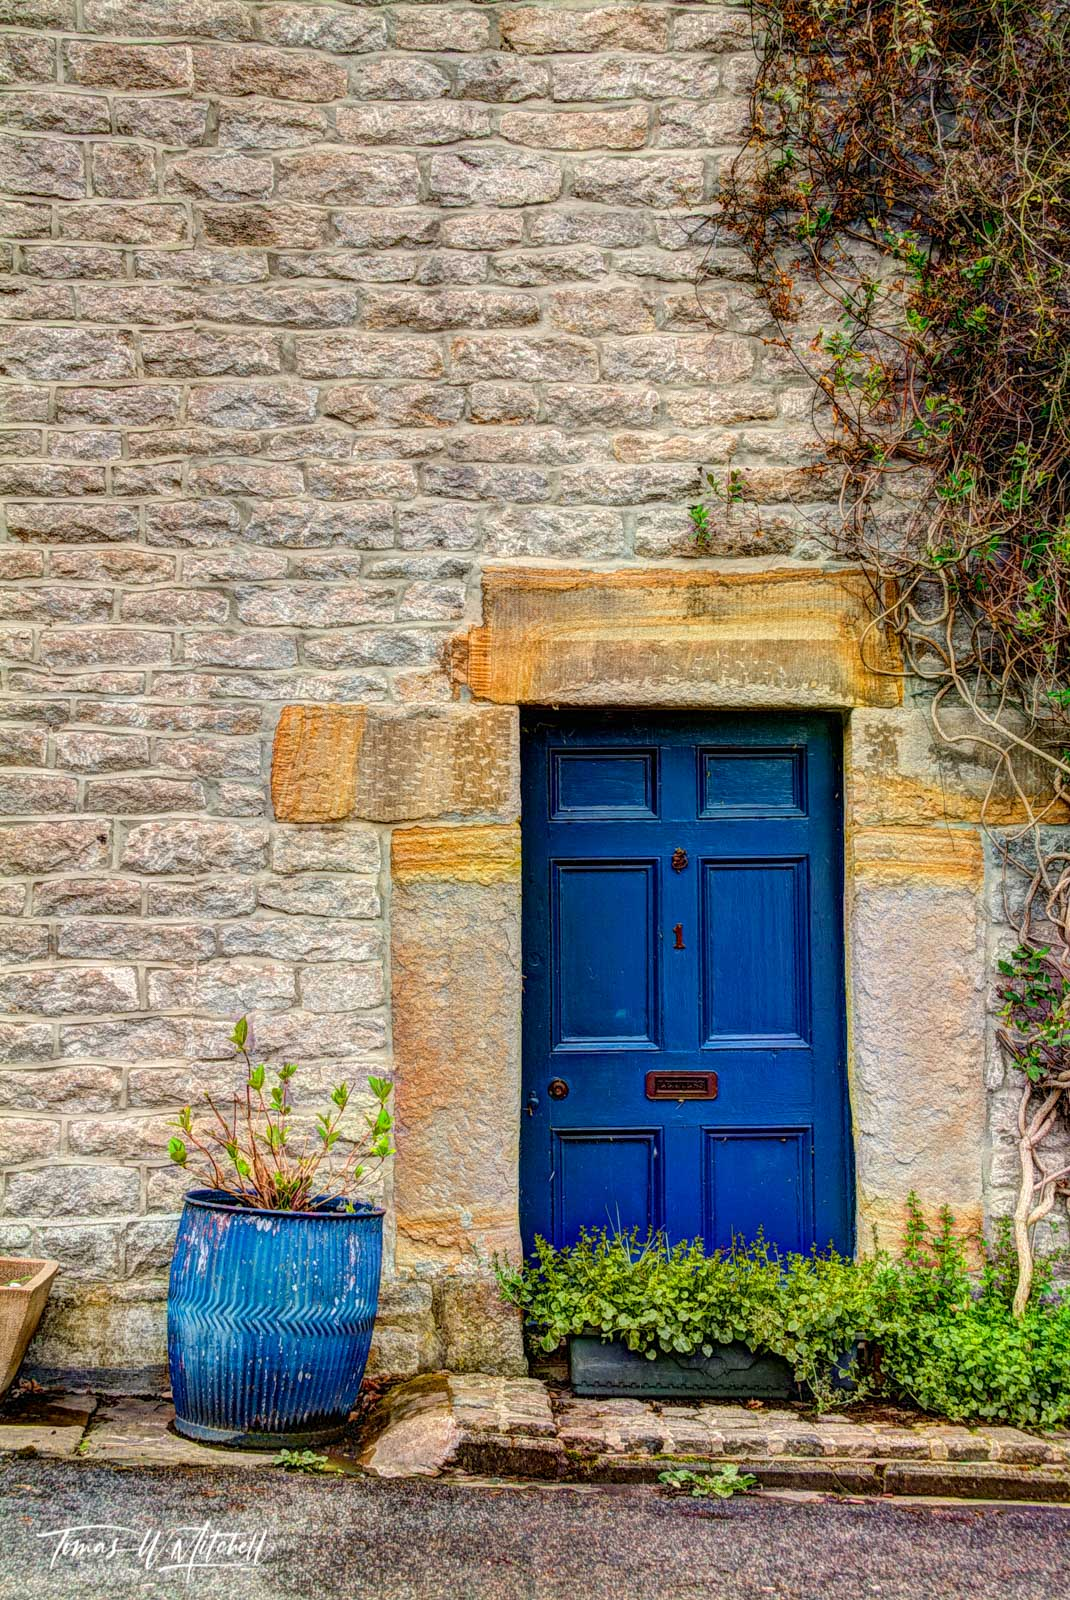 limited edition, museum grade, fine art, prints, castleton, england, small town, peak district, england, door, pot, blue, tardis, dr. who, british t.v., photo